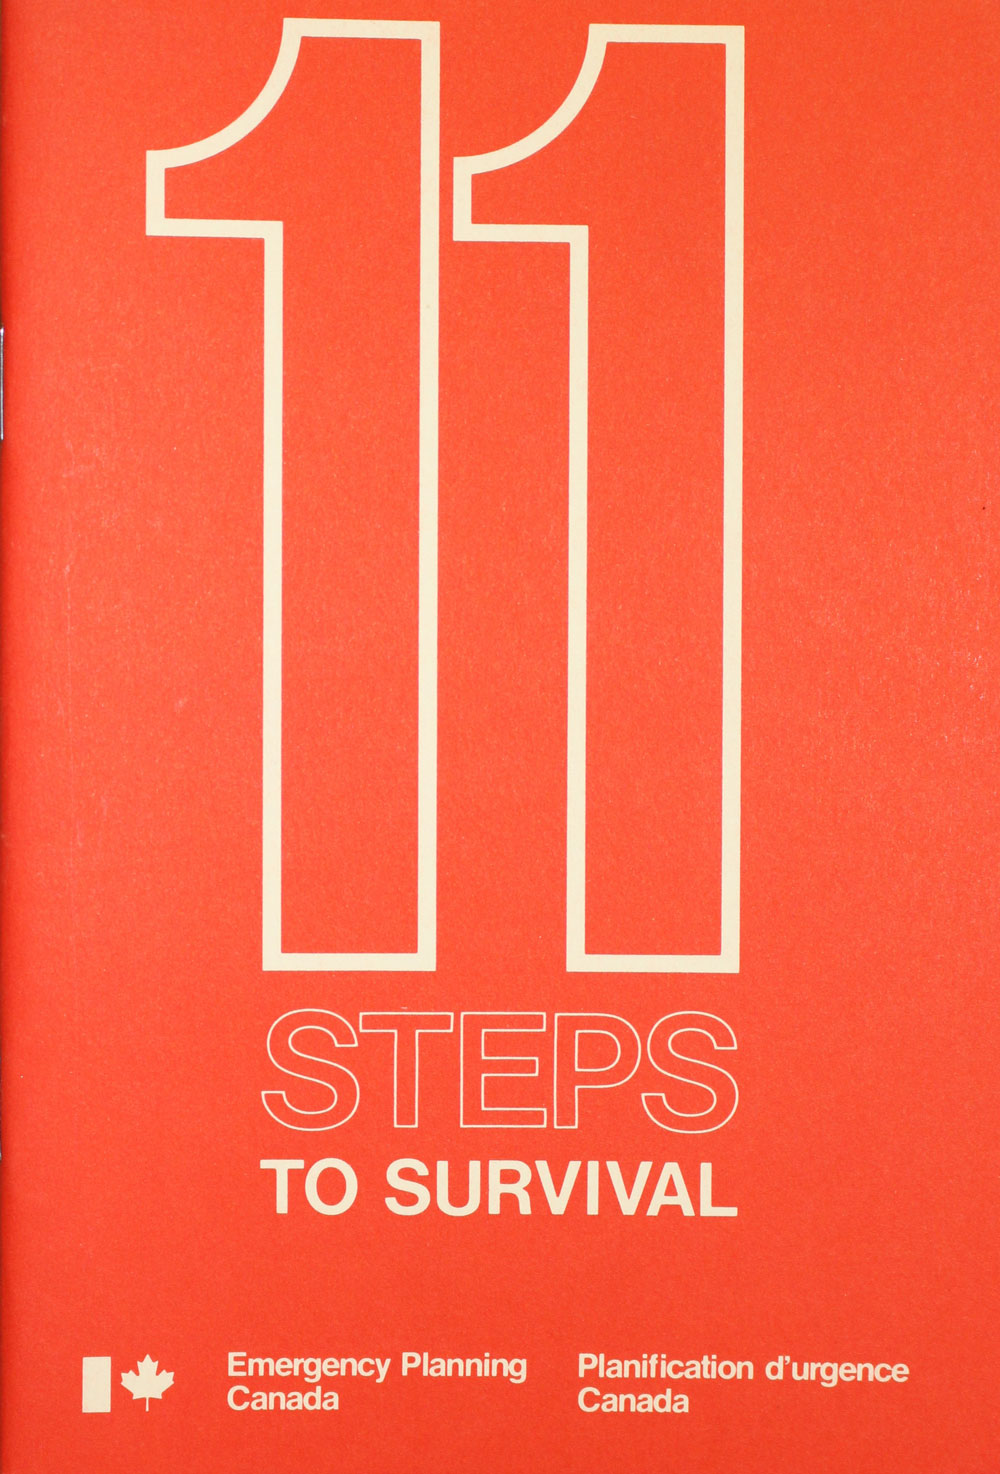 11 Steps to Survival